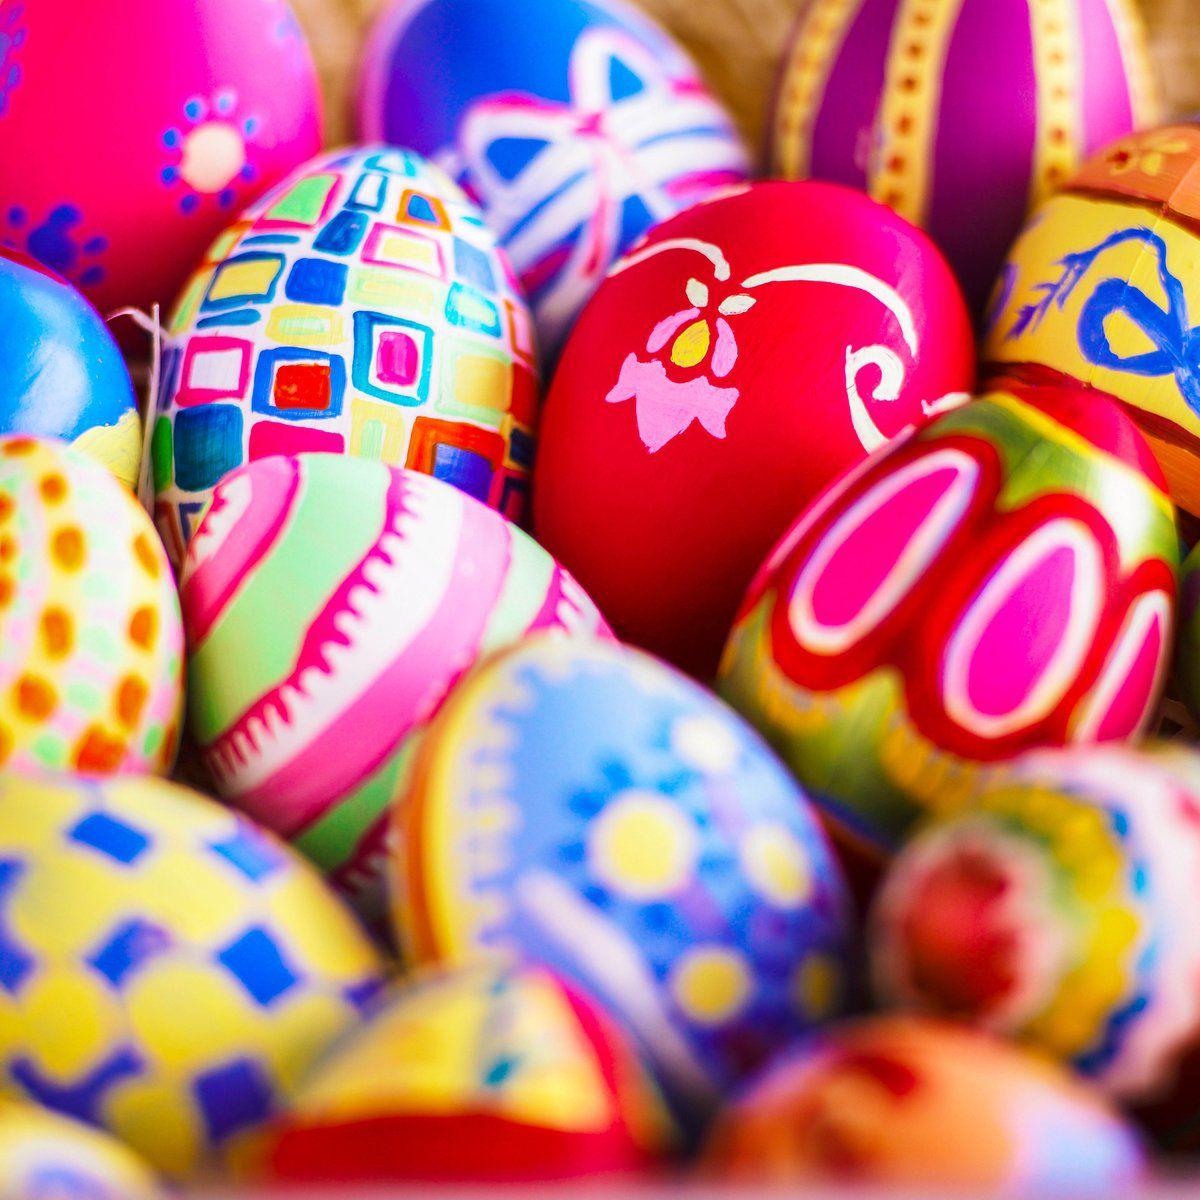 Churches, groups plan Easter services, egg hunts